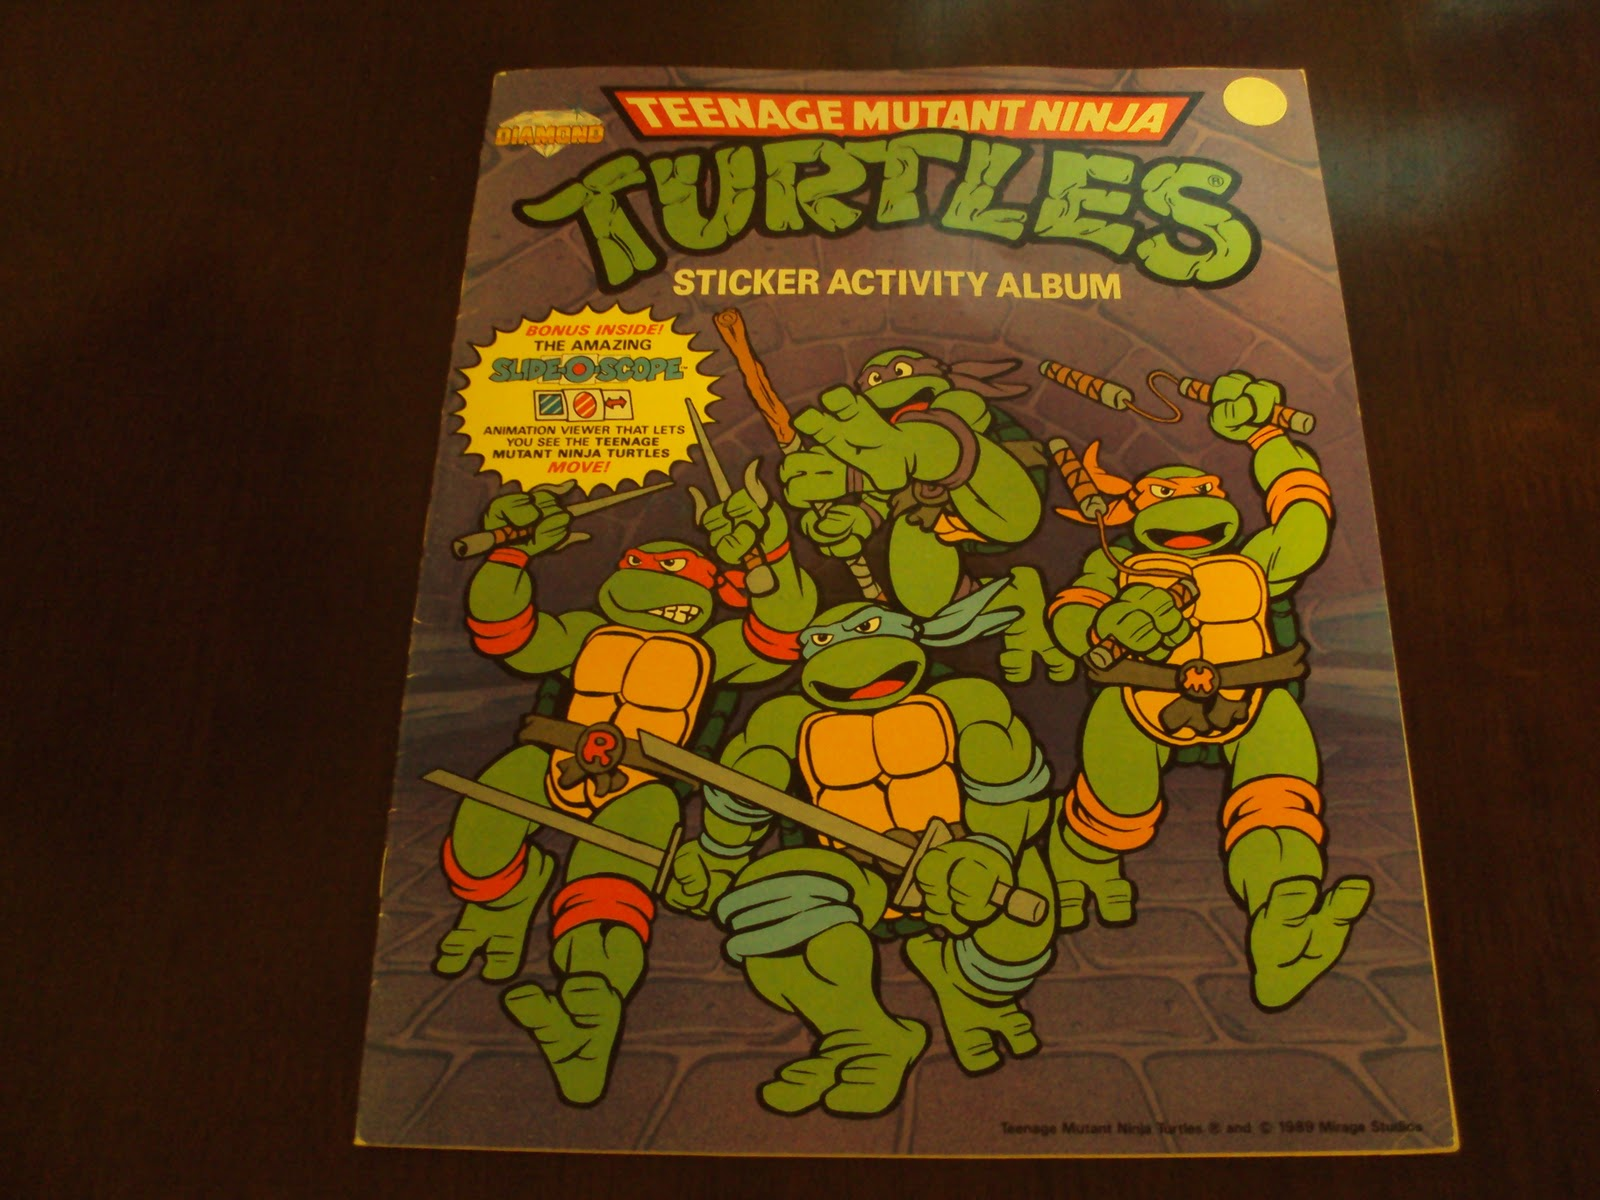 Warm Fresh Coffee I Collect Panini Stickers Diamond Teenage Mutant Ninja Turtles Sticker Activity Album 1989 100 Complete